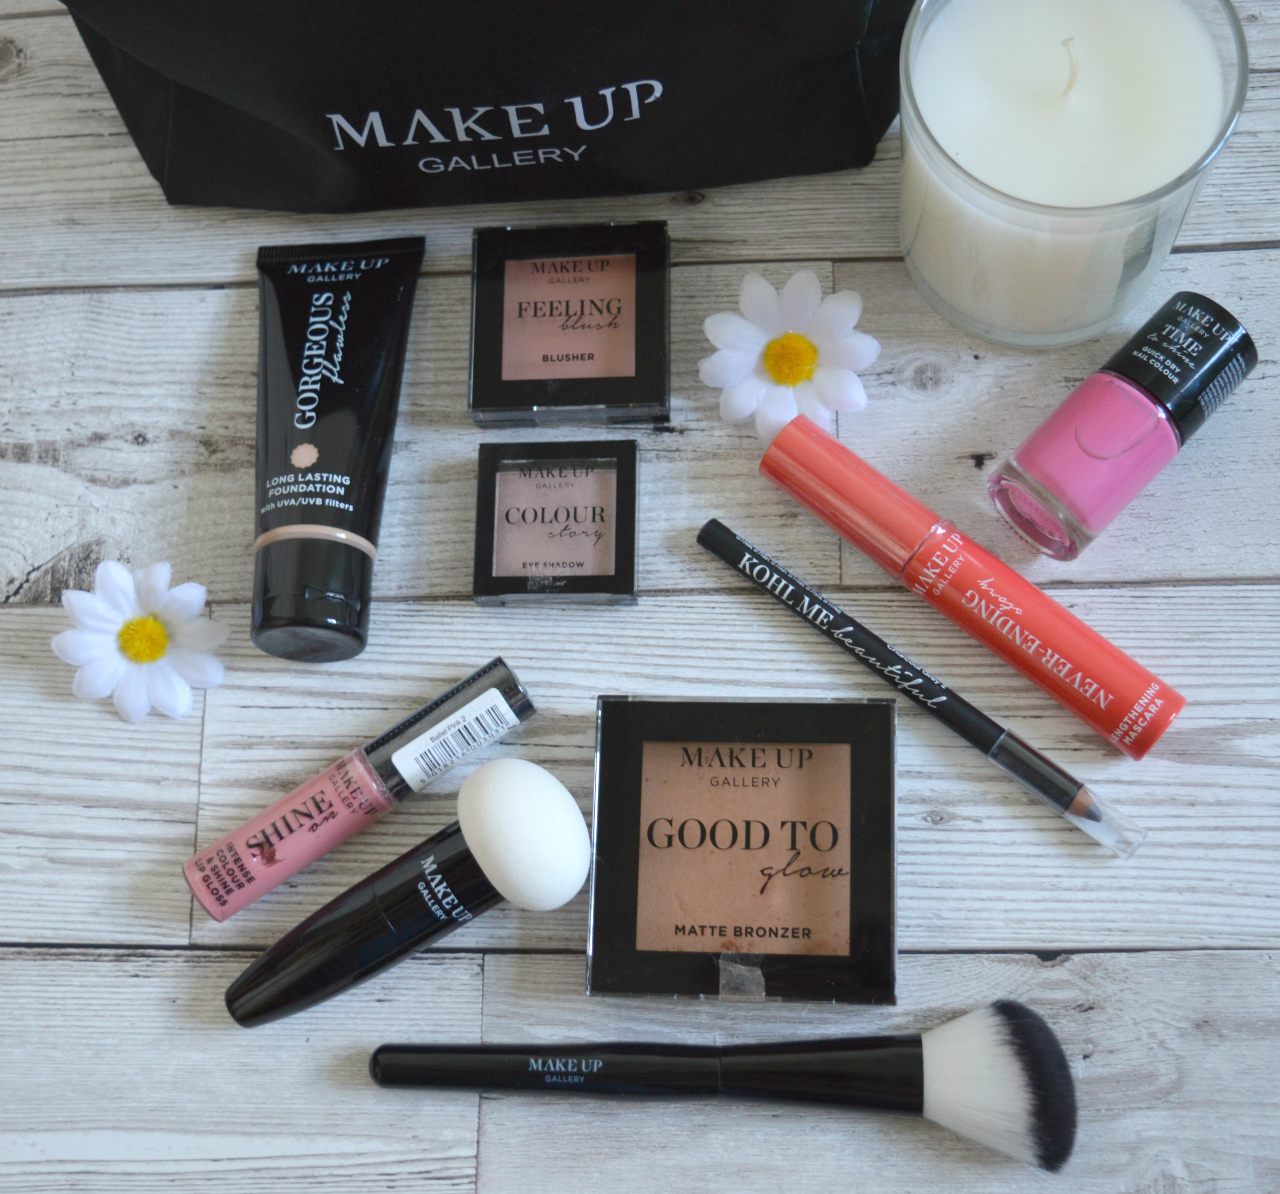 Poundland Make Up Gallery £10.00 Make Up Challenge